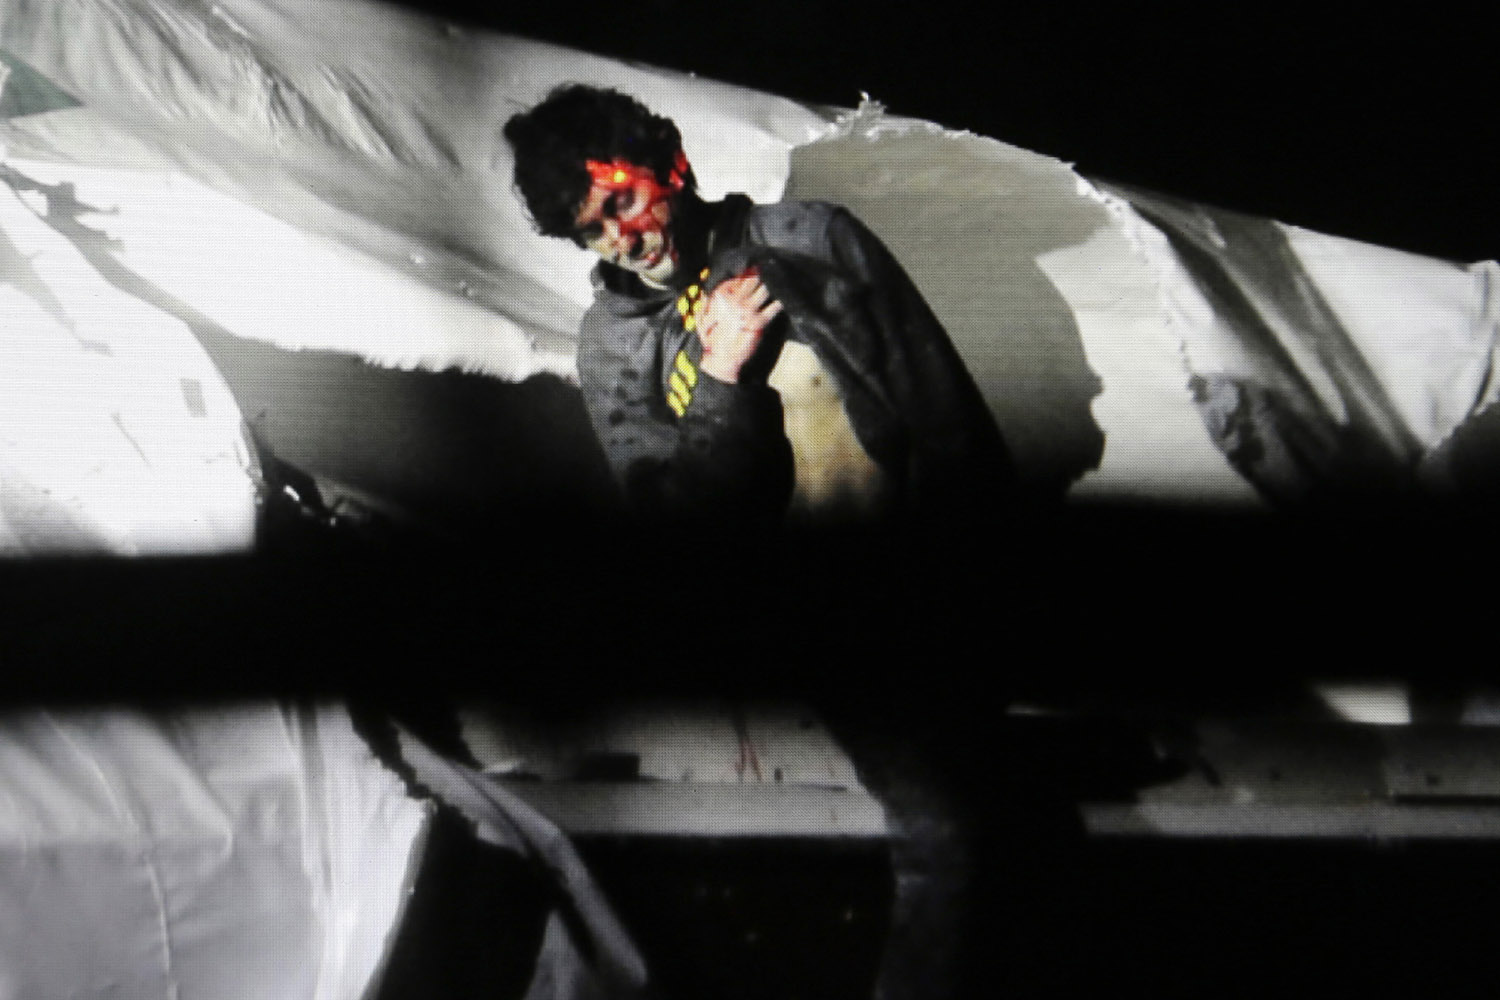 April 19, 2013. This photo released by Sean Murphy of the Massachusetts State Police shows 19-year-old Boston Marathon bombing suspect Dzhokhar Tsarnaev leaning over in a boat at the time of his capture by law enforcement authorities in Watertown, Mass.